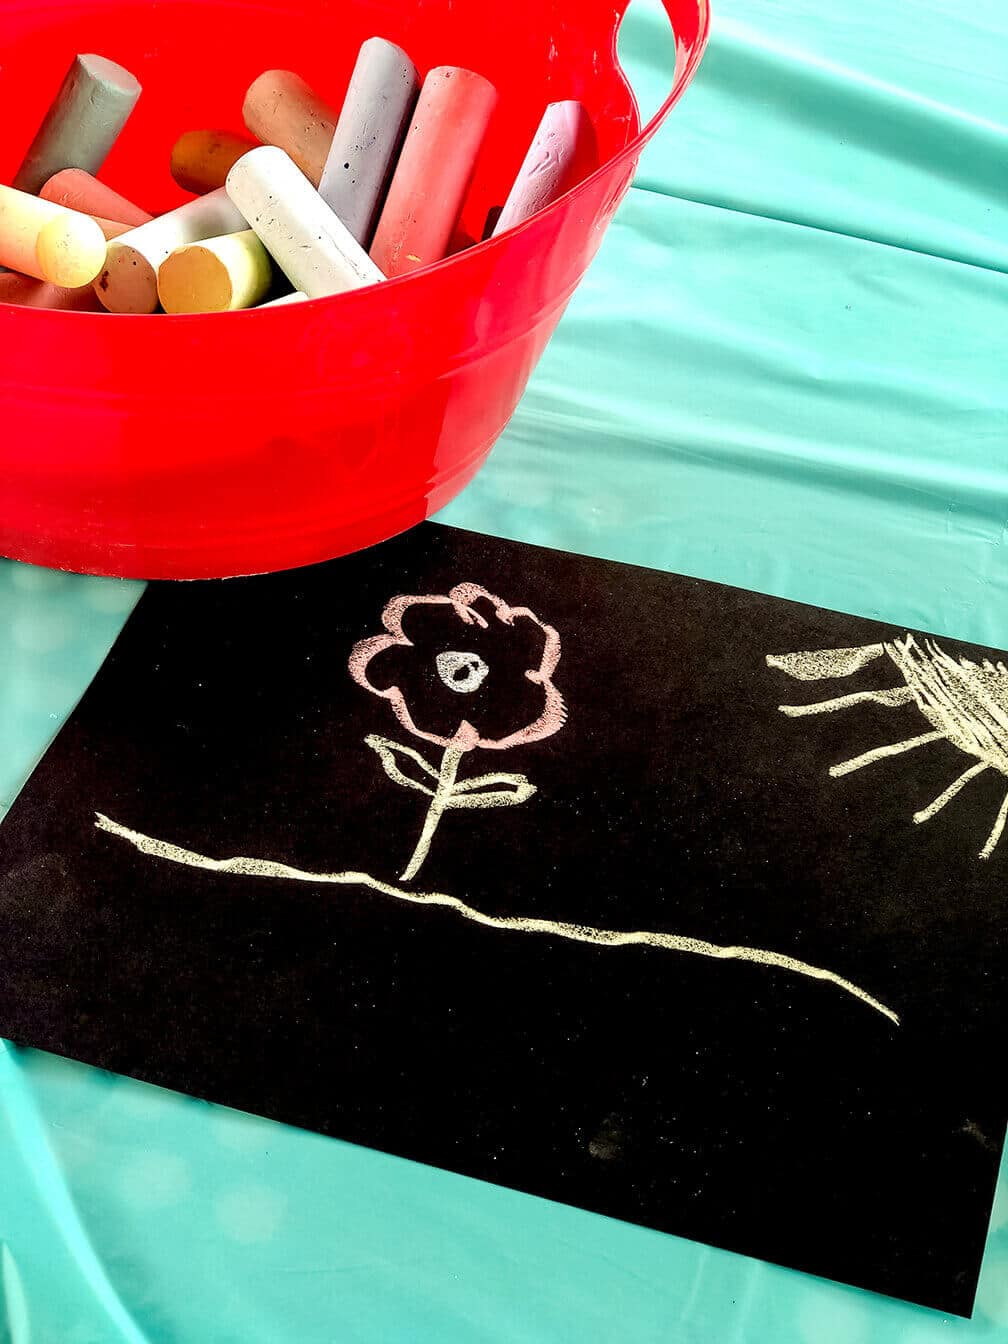 Sidewalk chalk art Mary Poppins Party Idea